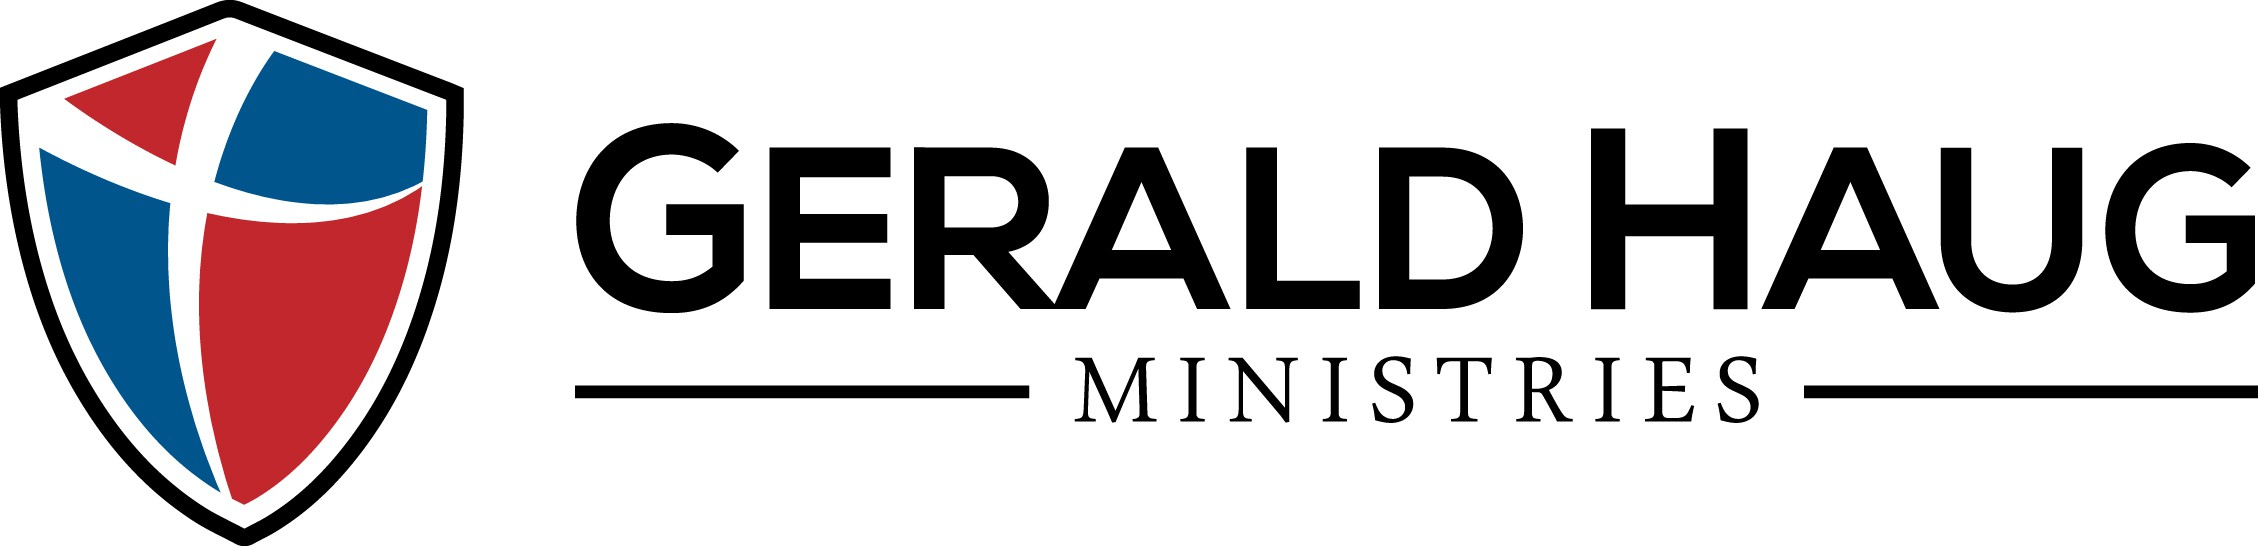 Create a Logo to reflect a dynamic Christian Ministry focused on Discipleship